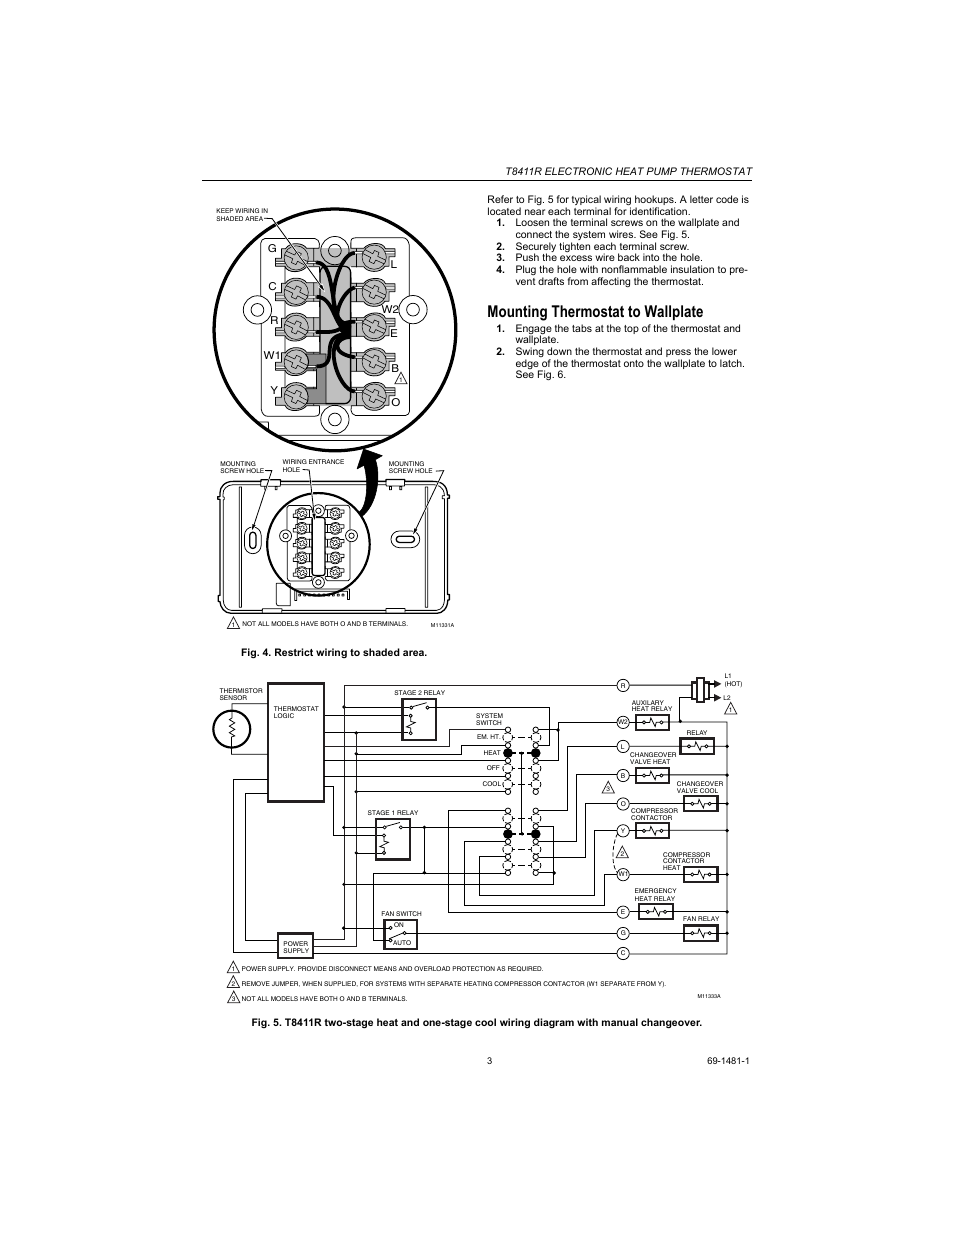 T8411r Wiring Diagram Schemes Heat Pump Thermostat Diagrams Mounting To Wallplate Honeywell Rh Manualsdir Com Old Trane Thermostats 5 Wire